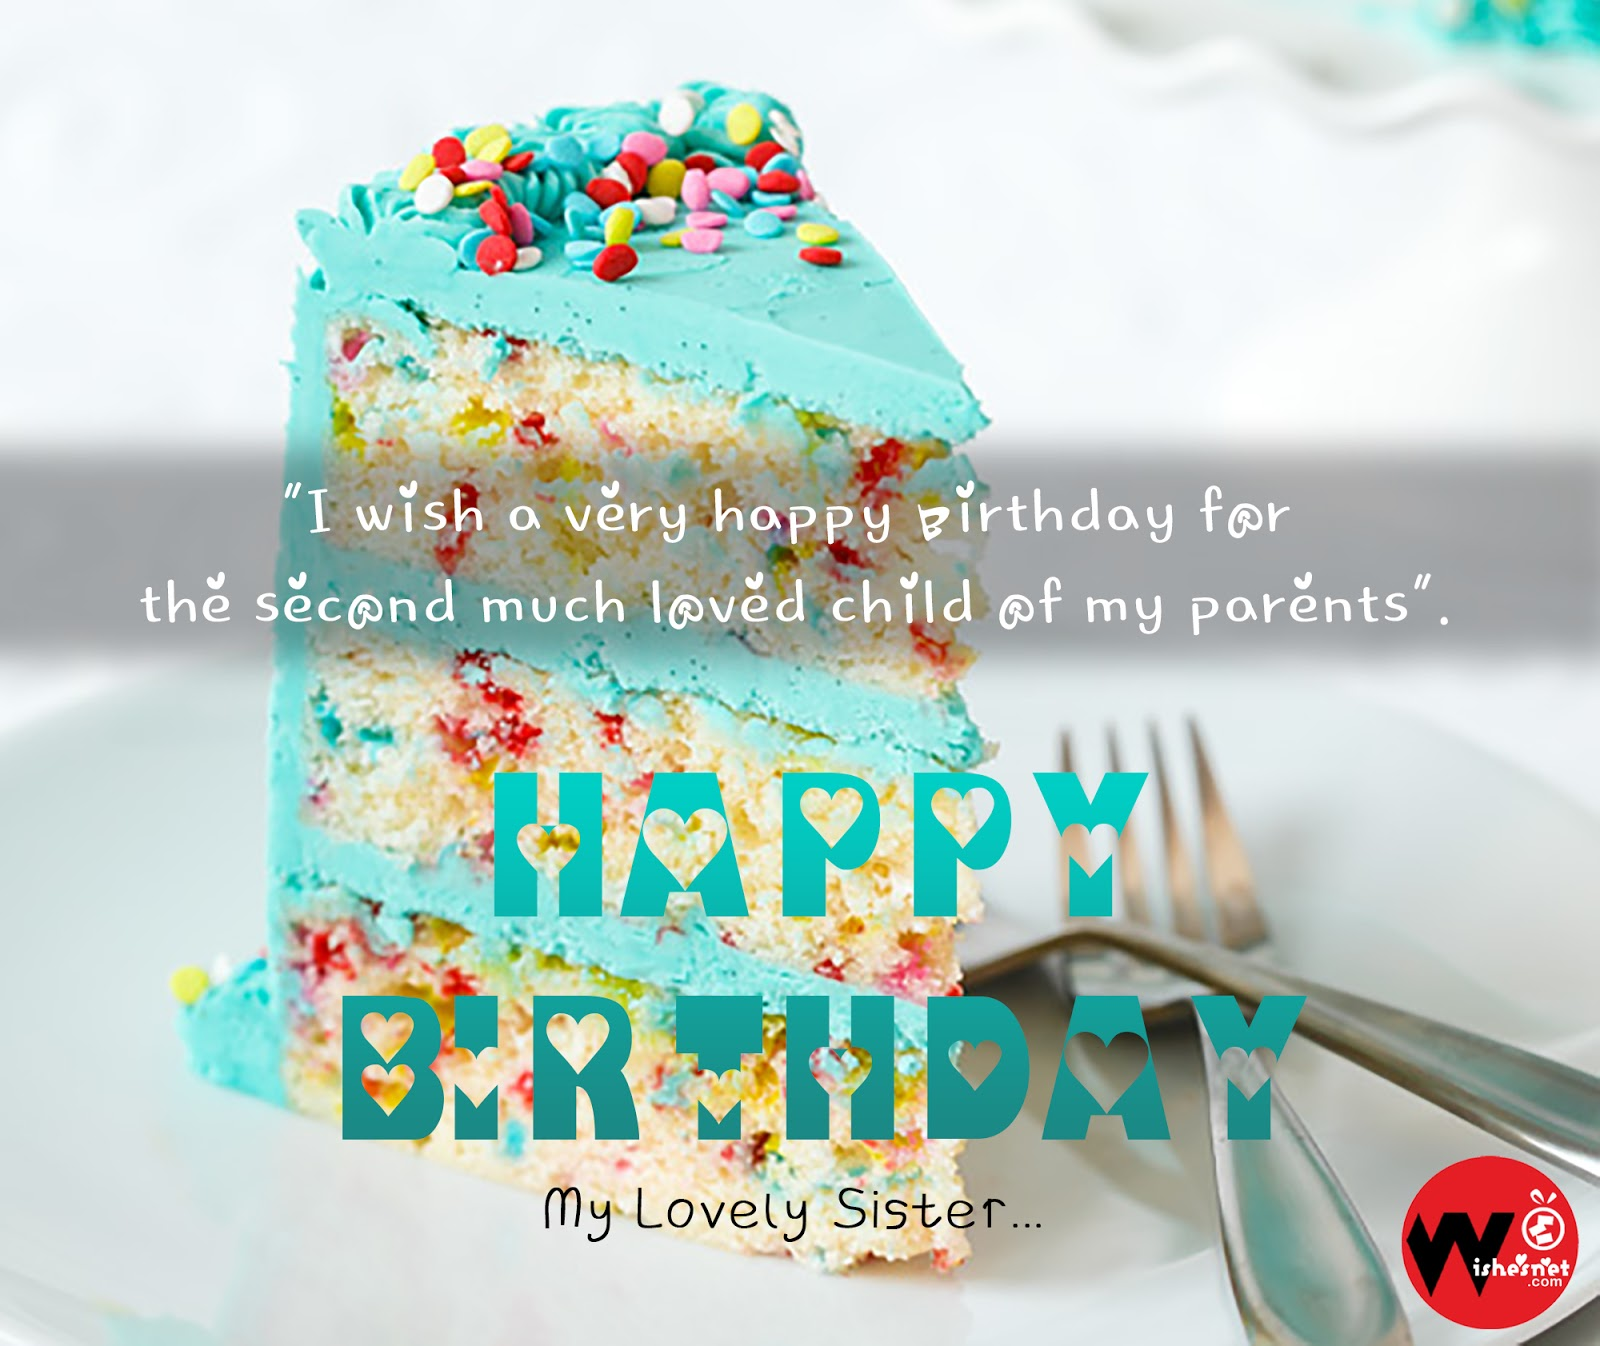 Happy Birthday Images Free Download Happy Birthday Sister Images